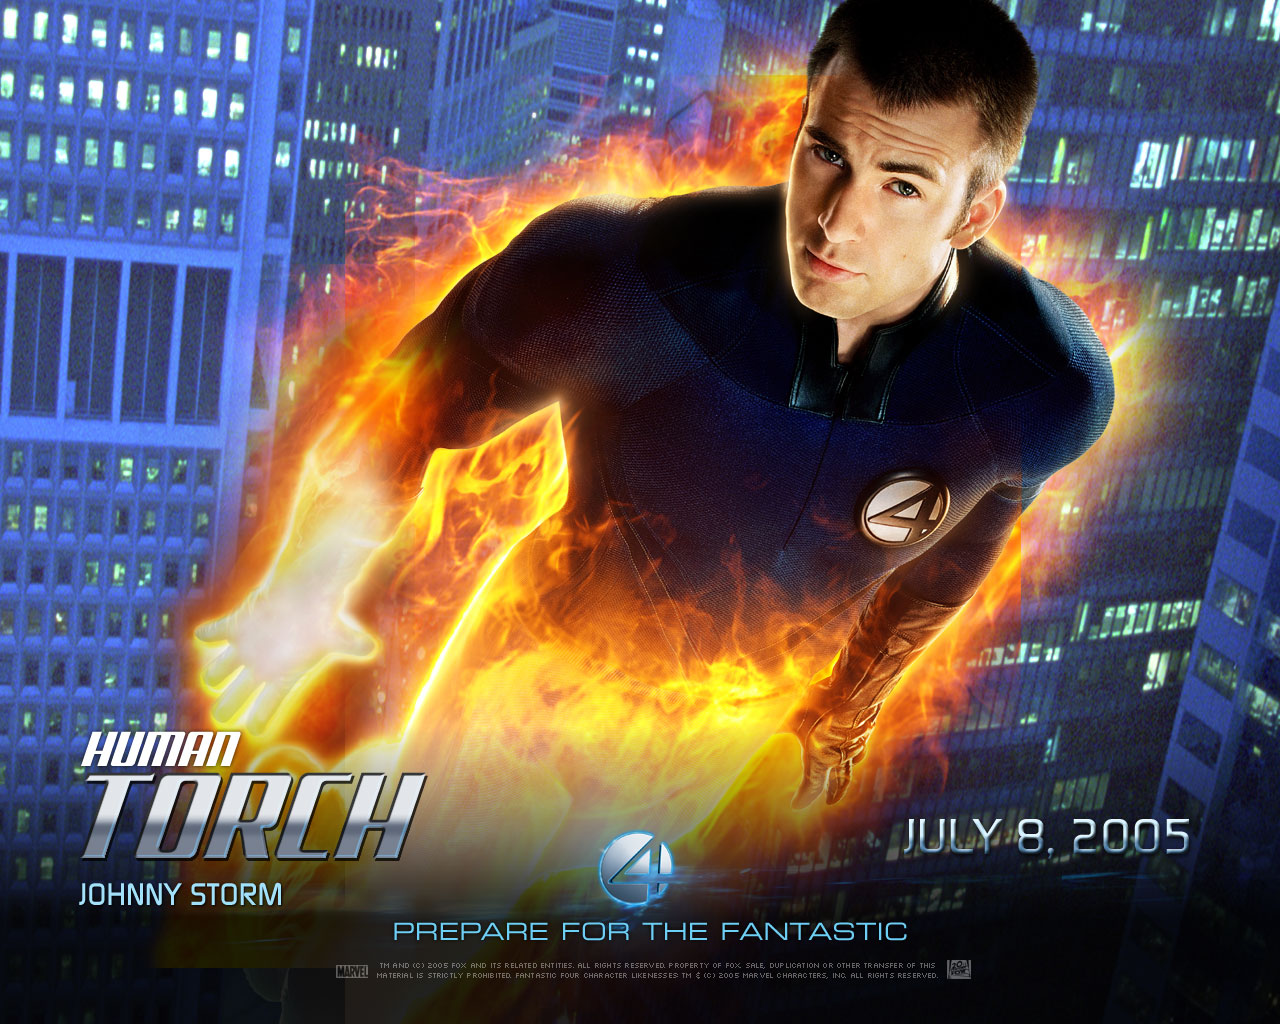 Human Torch wallpaperjpg 1280x1024